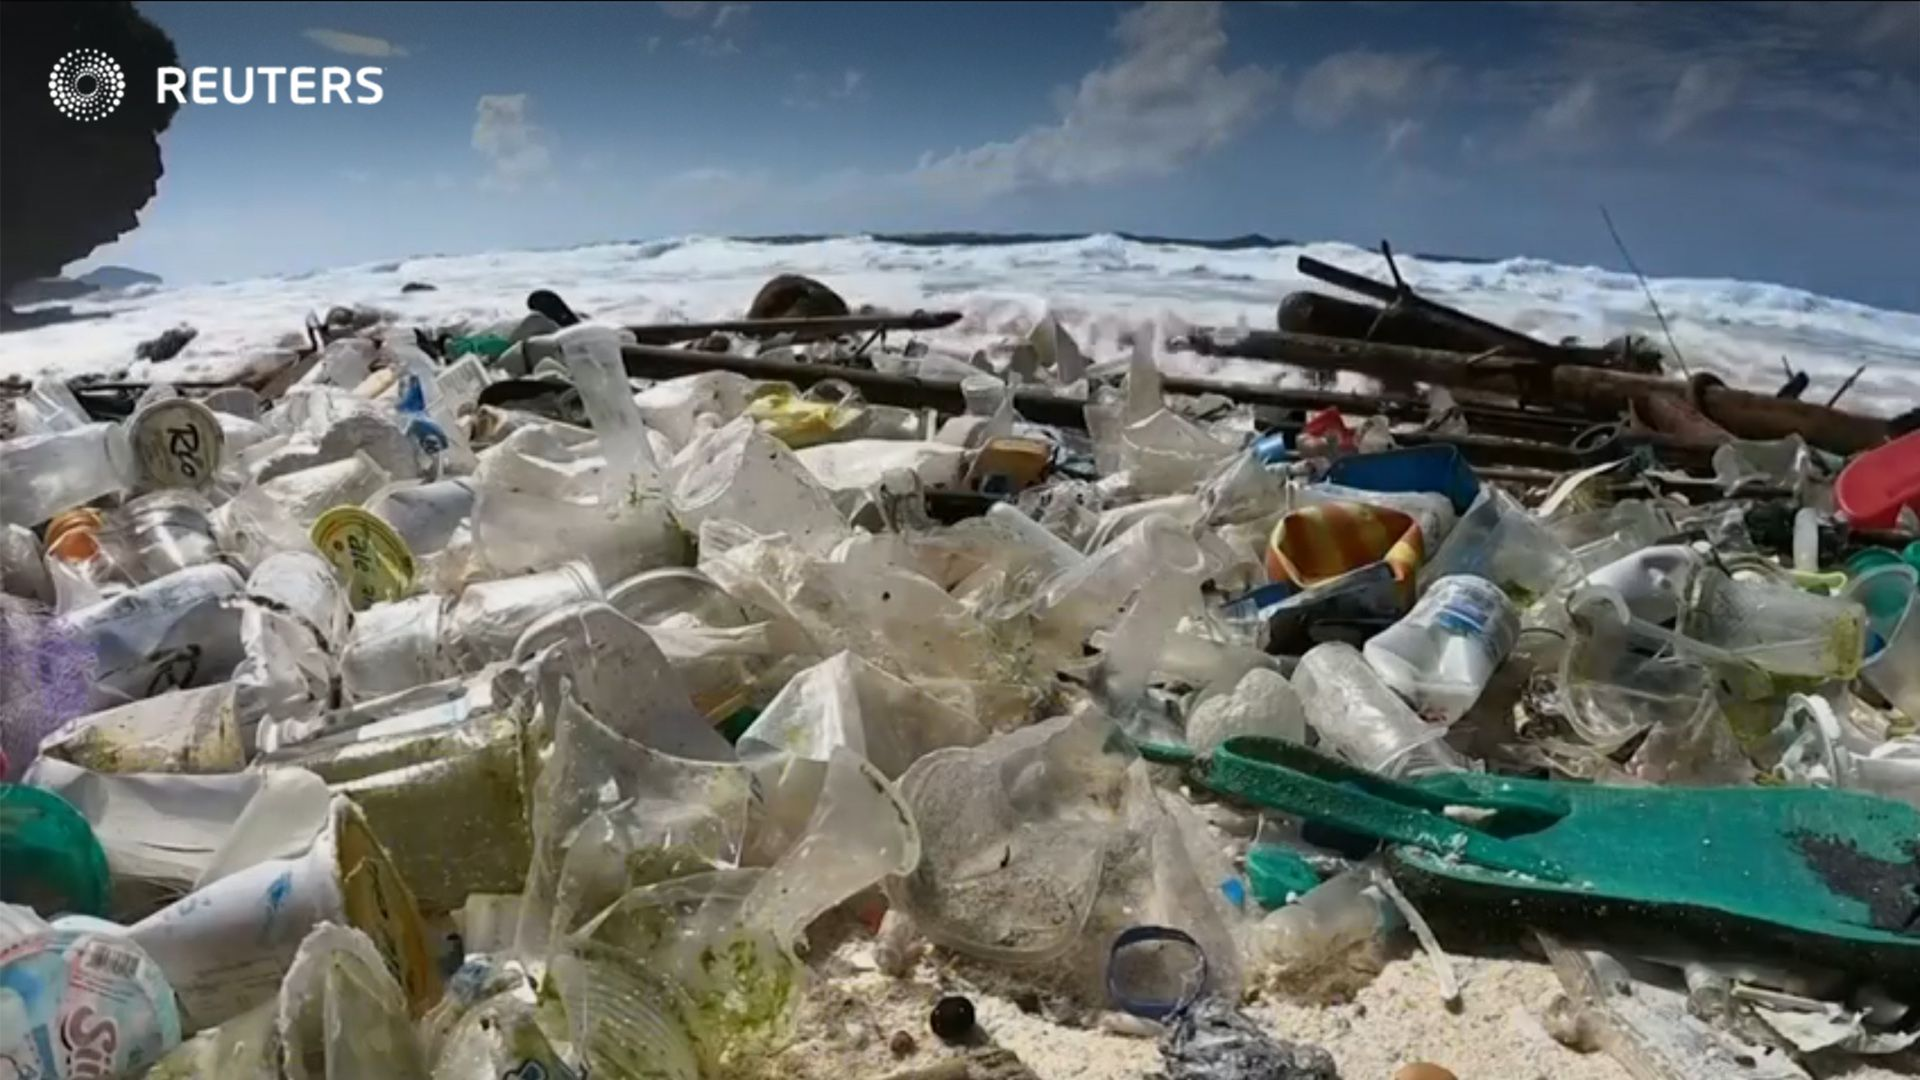 Environmentally unacceptable 7 gov't execs charged over uncontrolled plastic waste